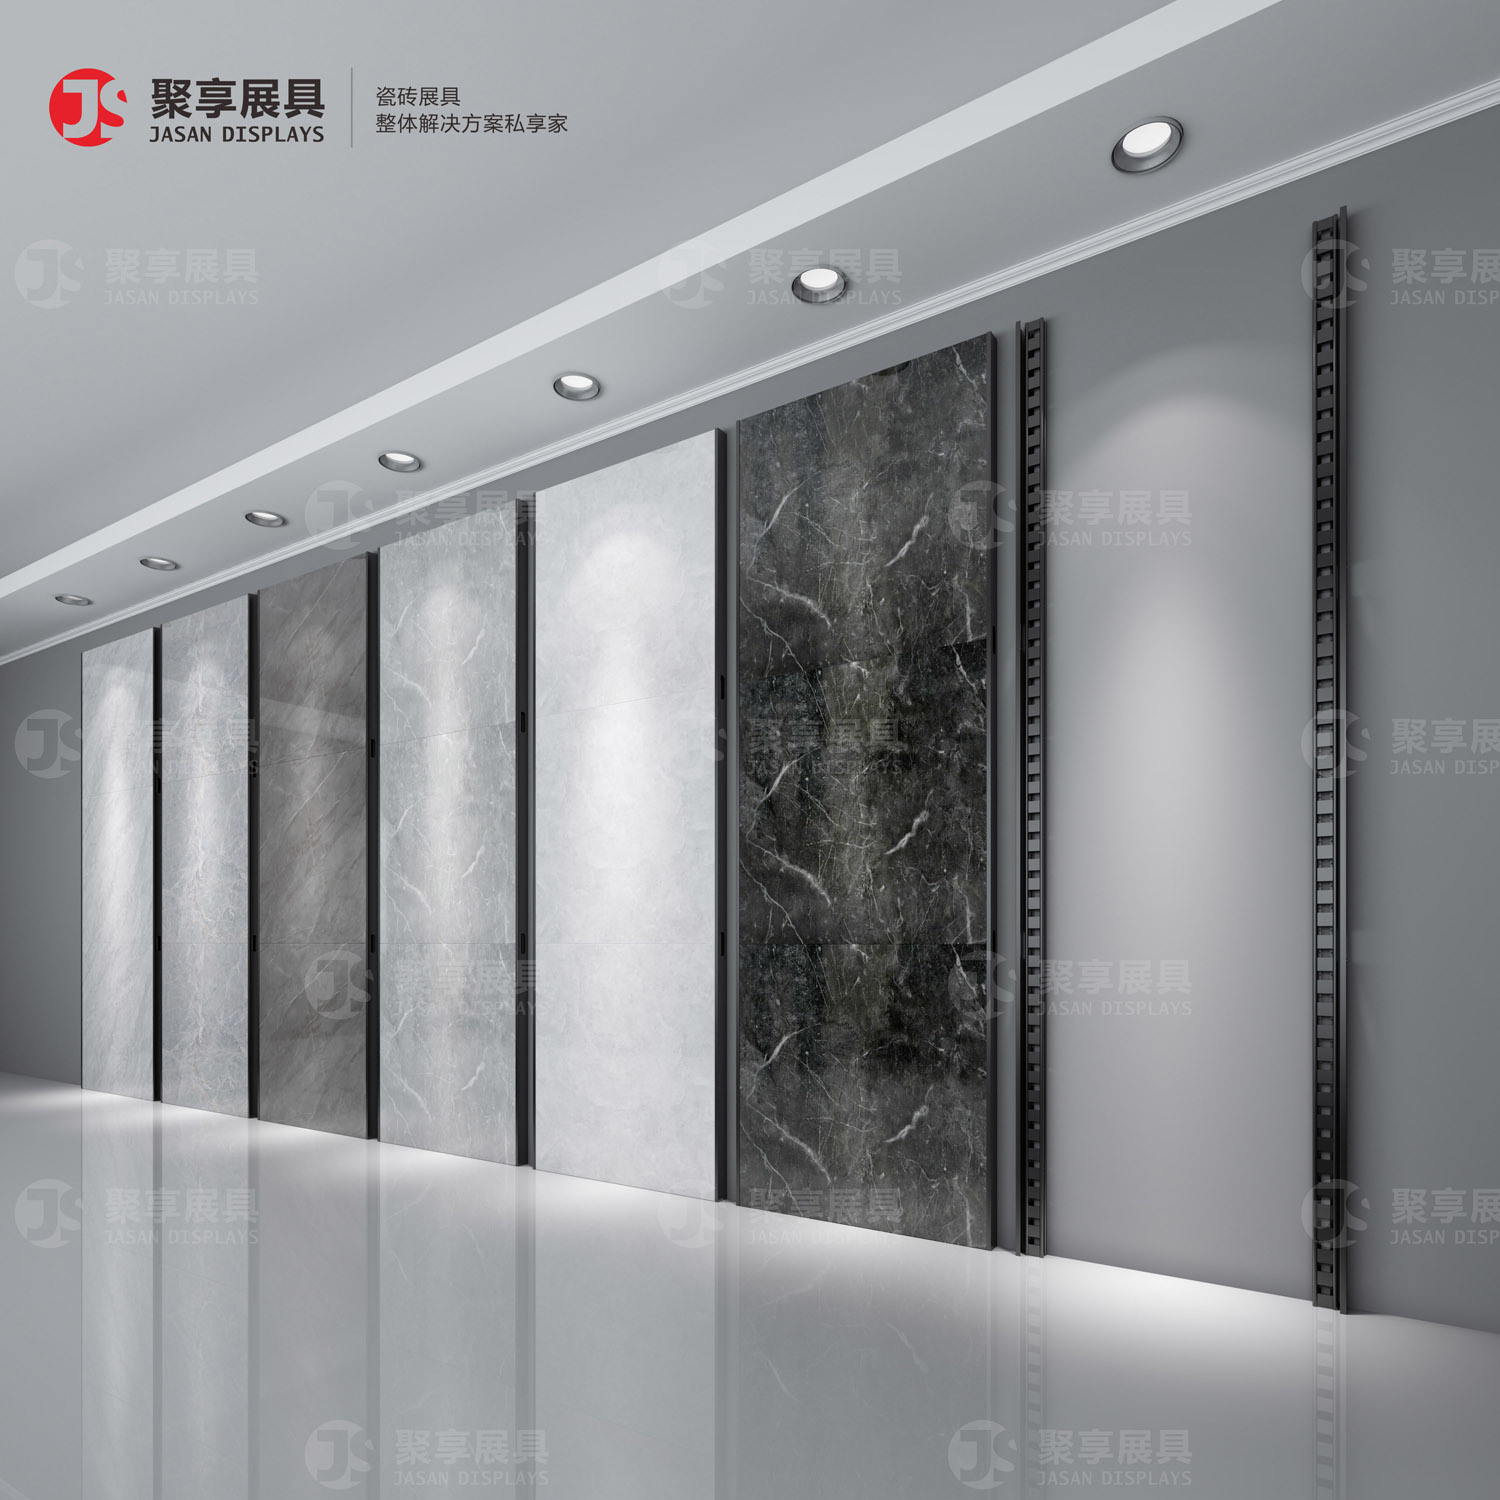 hot item jasan displays ceramic tile 600800 punching tube can adjust the wall stone sample hole plate display rack stand